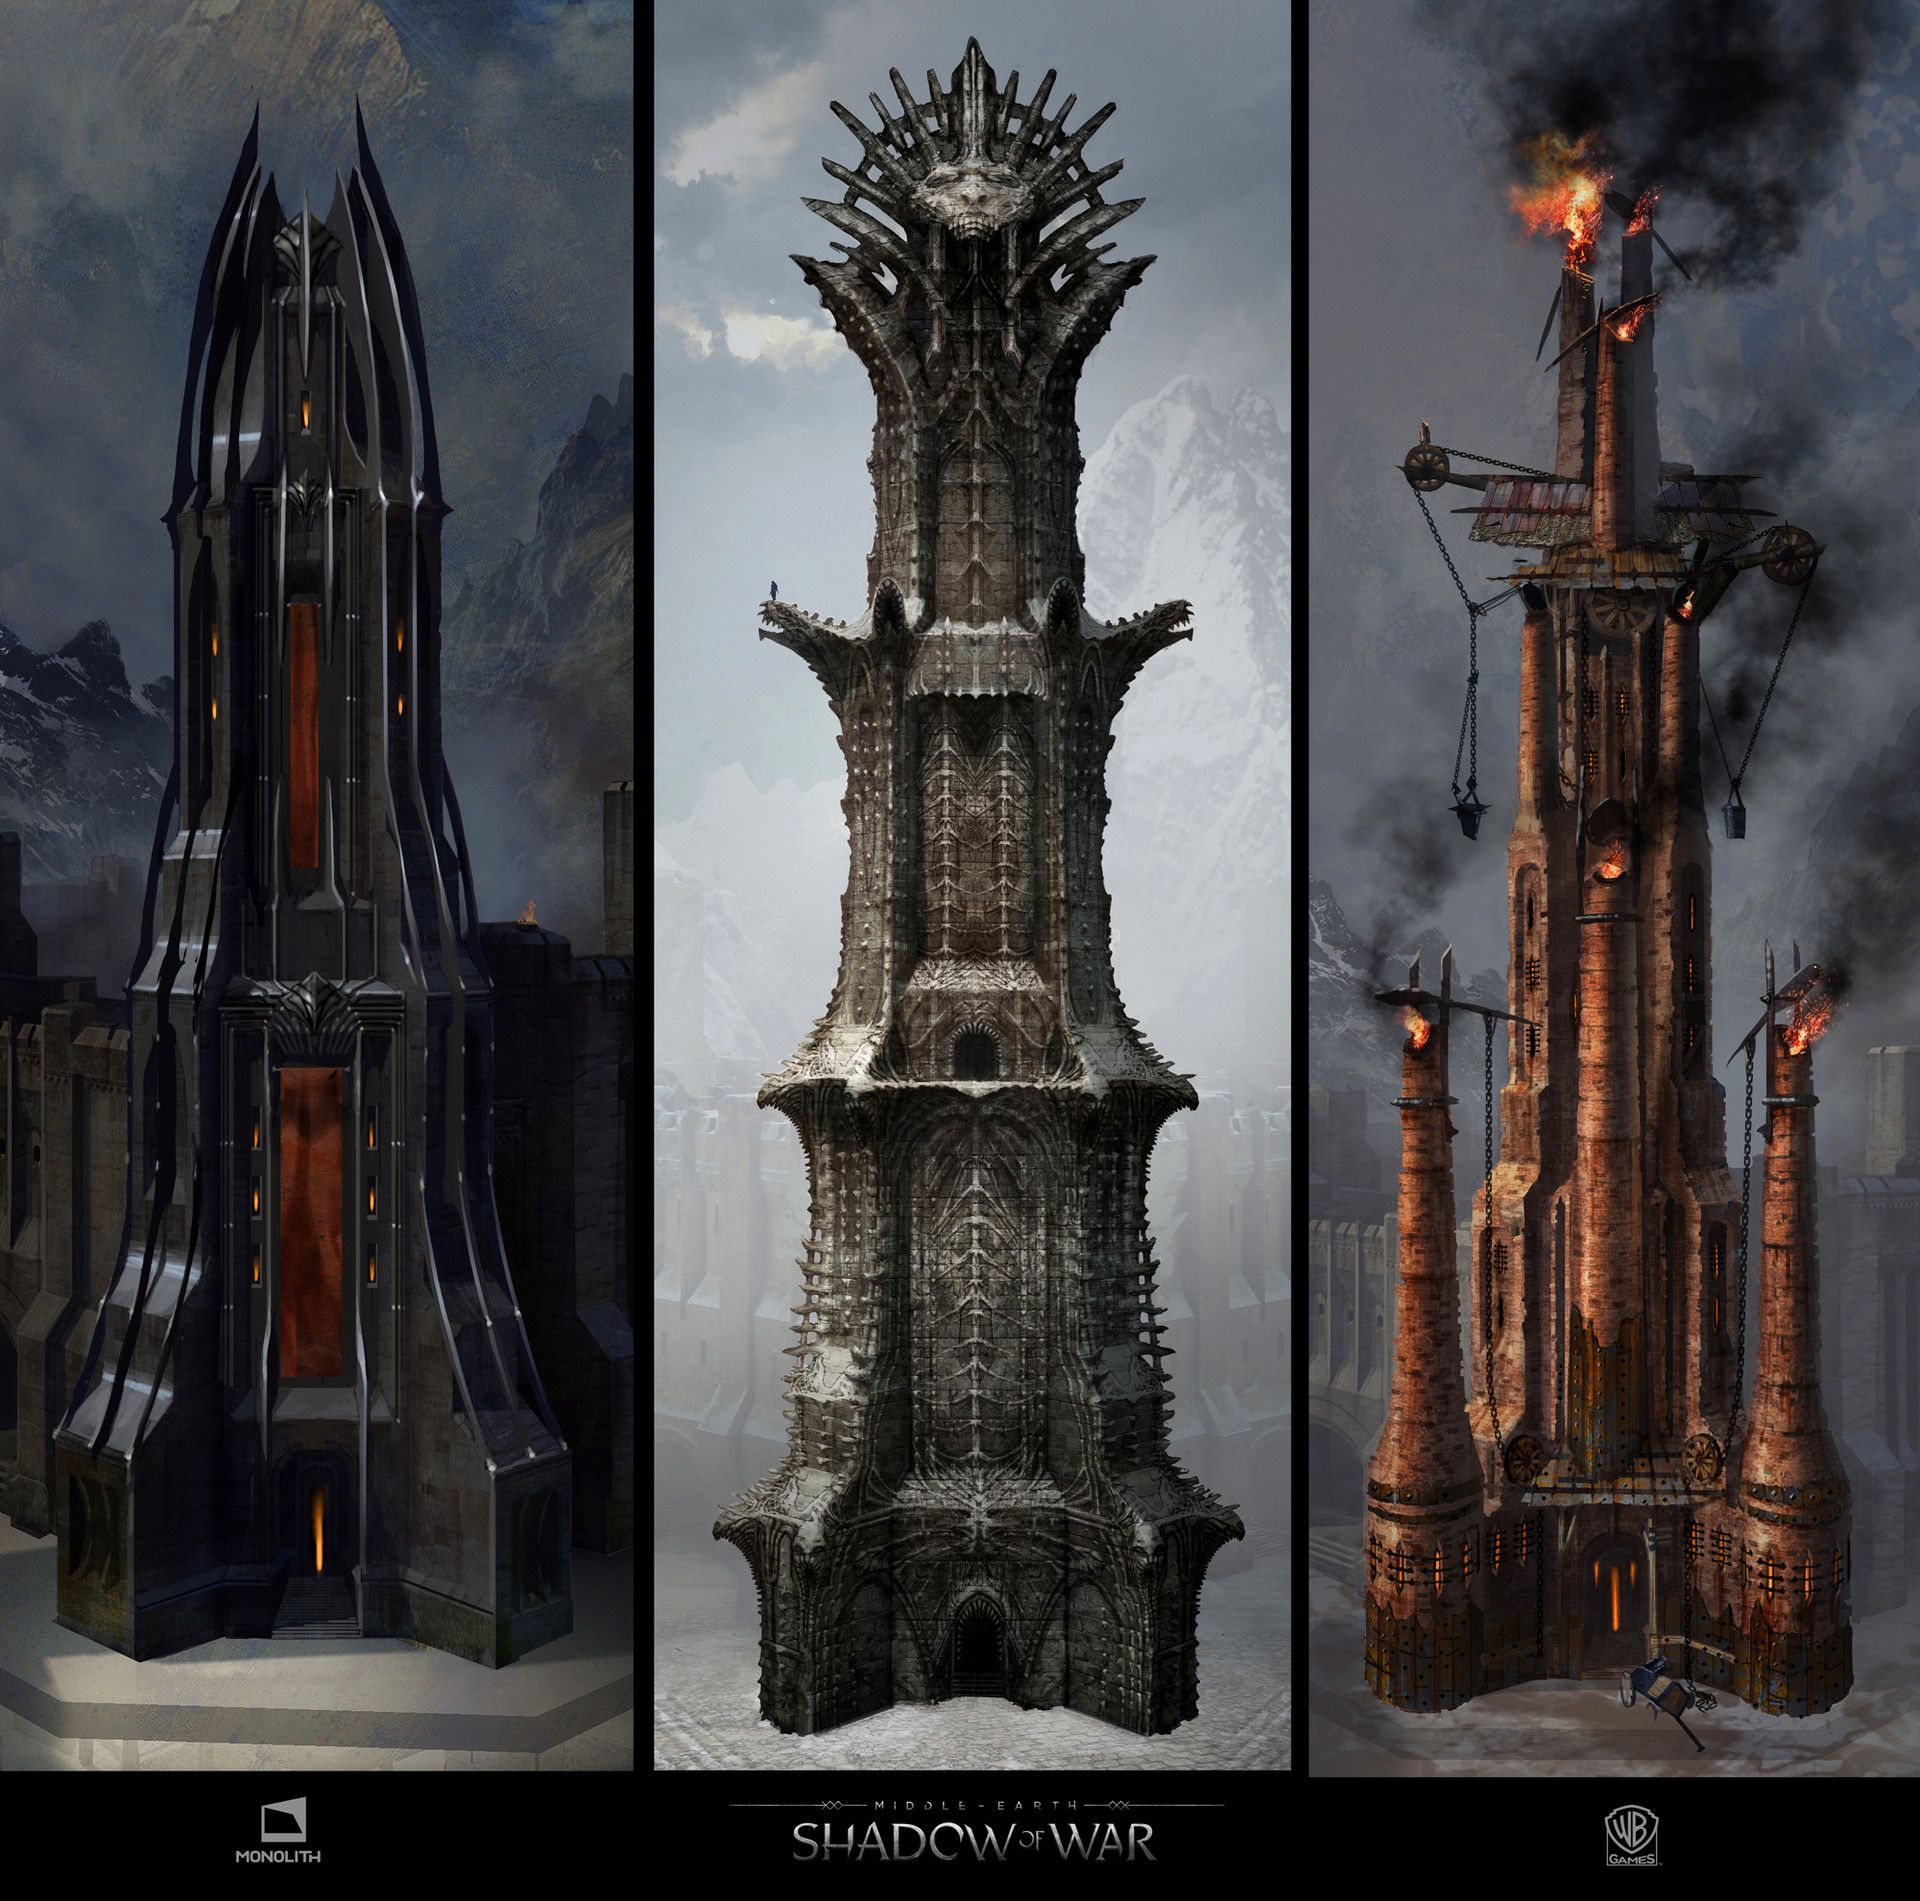 ArtStation - Miscellaneous stuff for Shadow of War, Steve ... on moria middle earth map, shadow of mordor middle earth wallpaper, shadow of mordor middle earth character skins, hobbit middle earth map, tolkien middle earth map, shadow of mordor middle earth xbox 360, shadow of mordor middle earth gollum, shadow of mordor middle earth review,